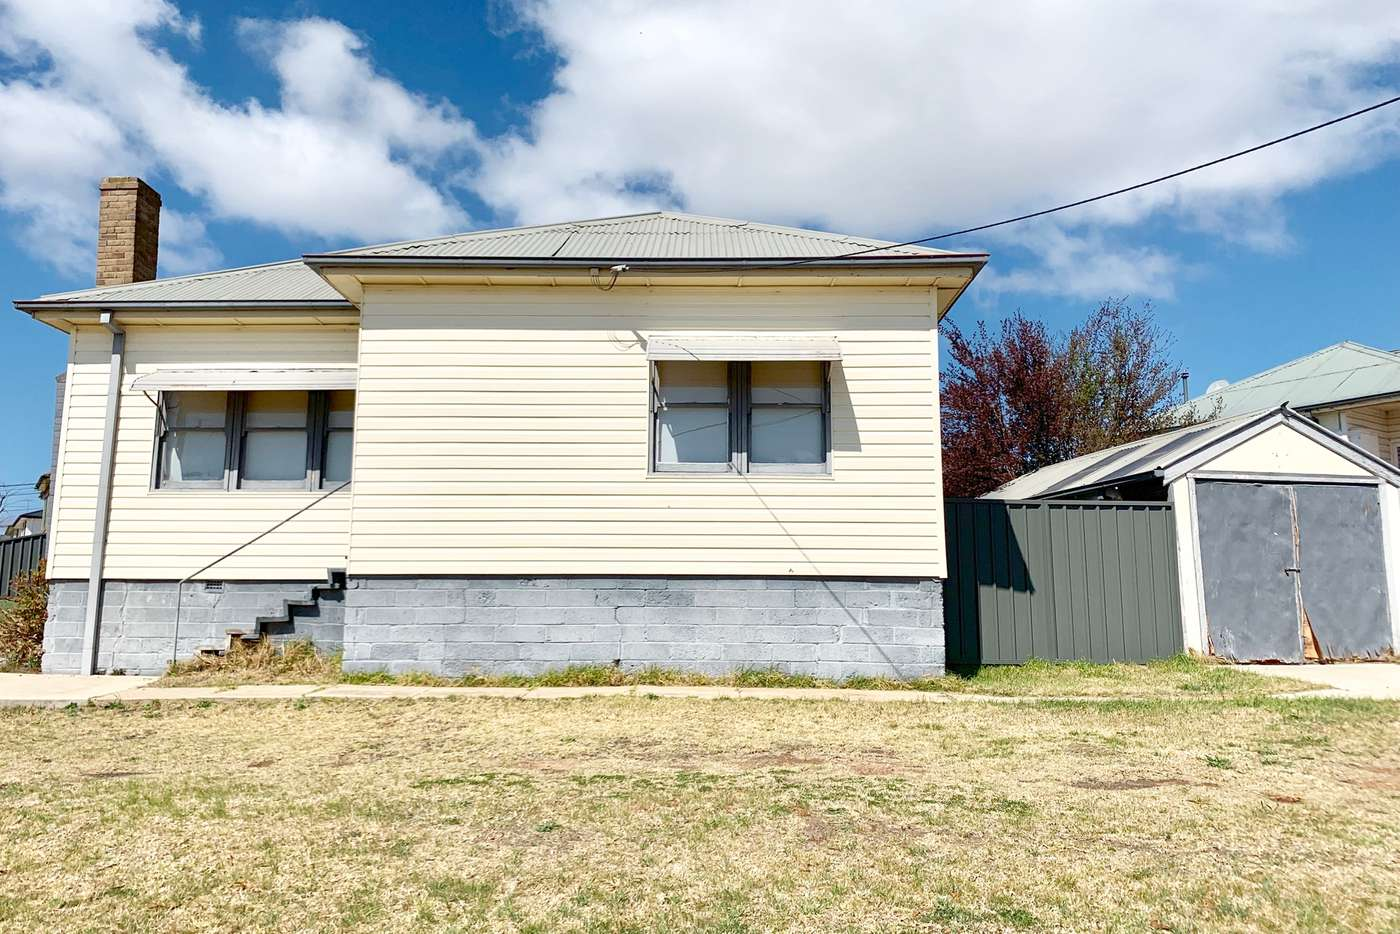 Main view of Homely house listing, 2 Hill Street, Goulburn NSW 2580